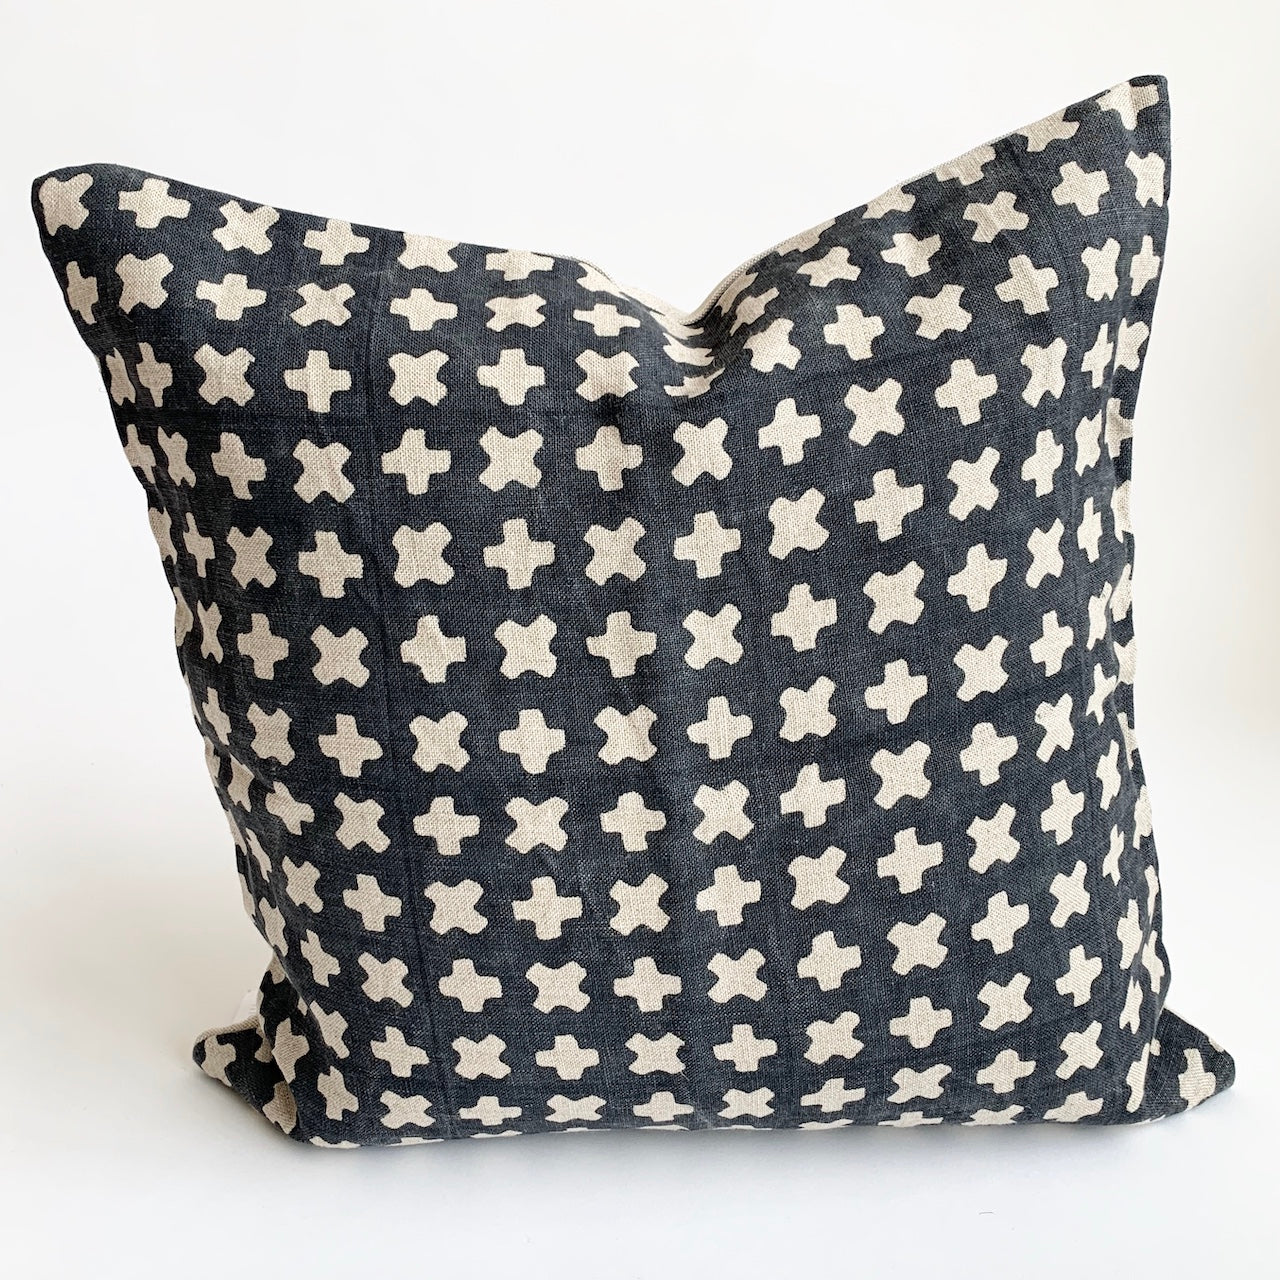 Eden Pillow, Black